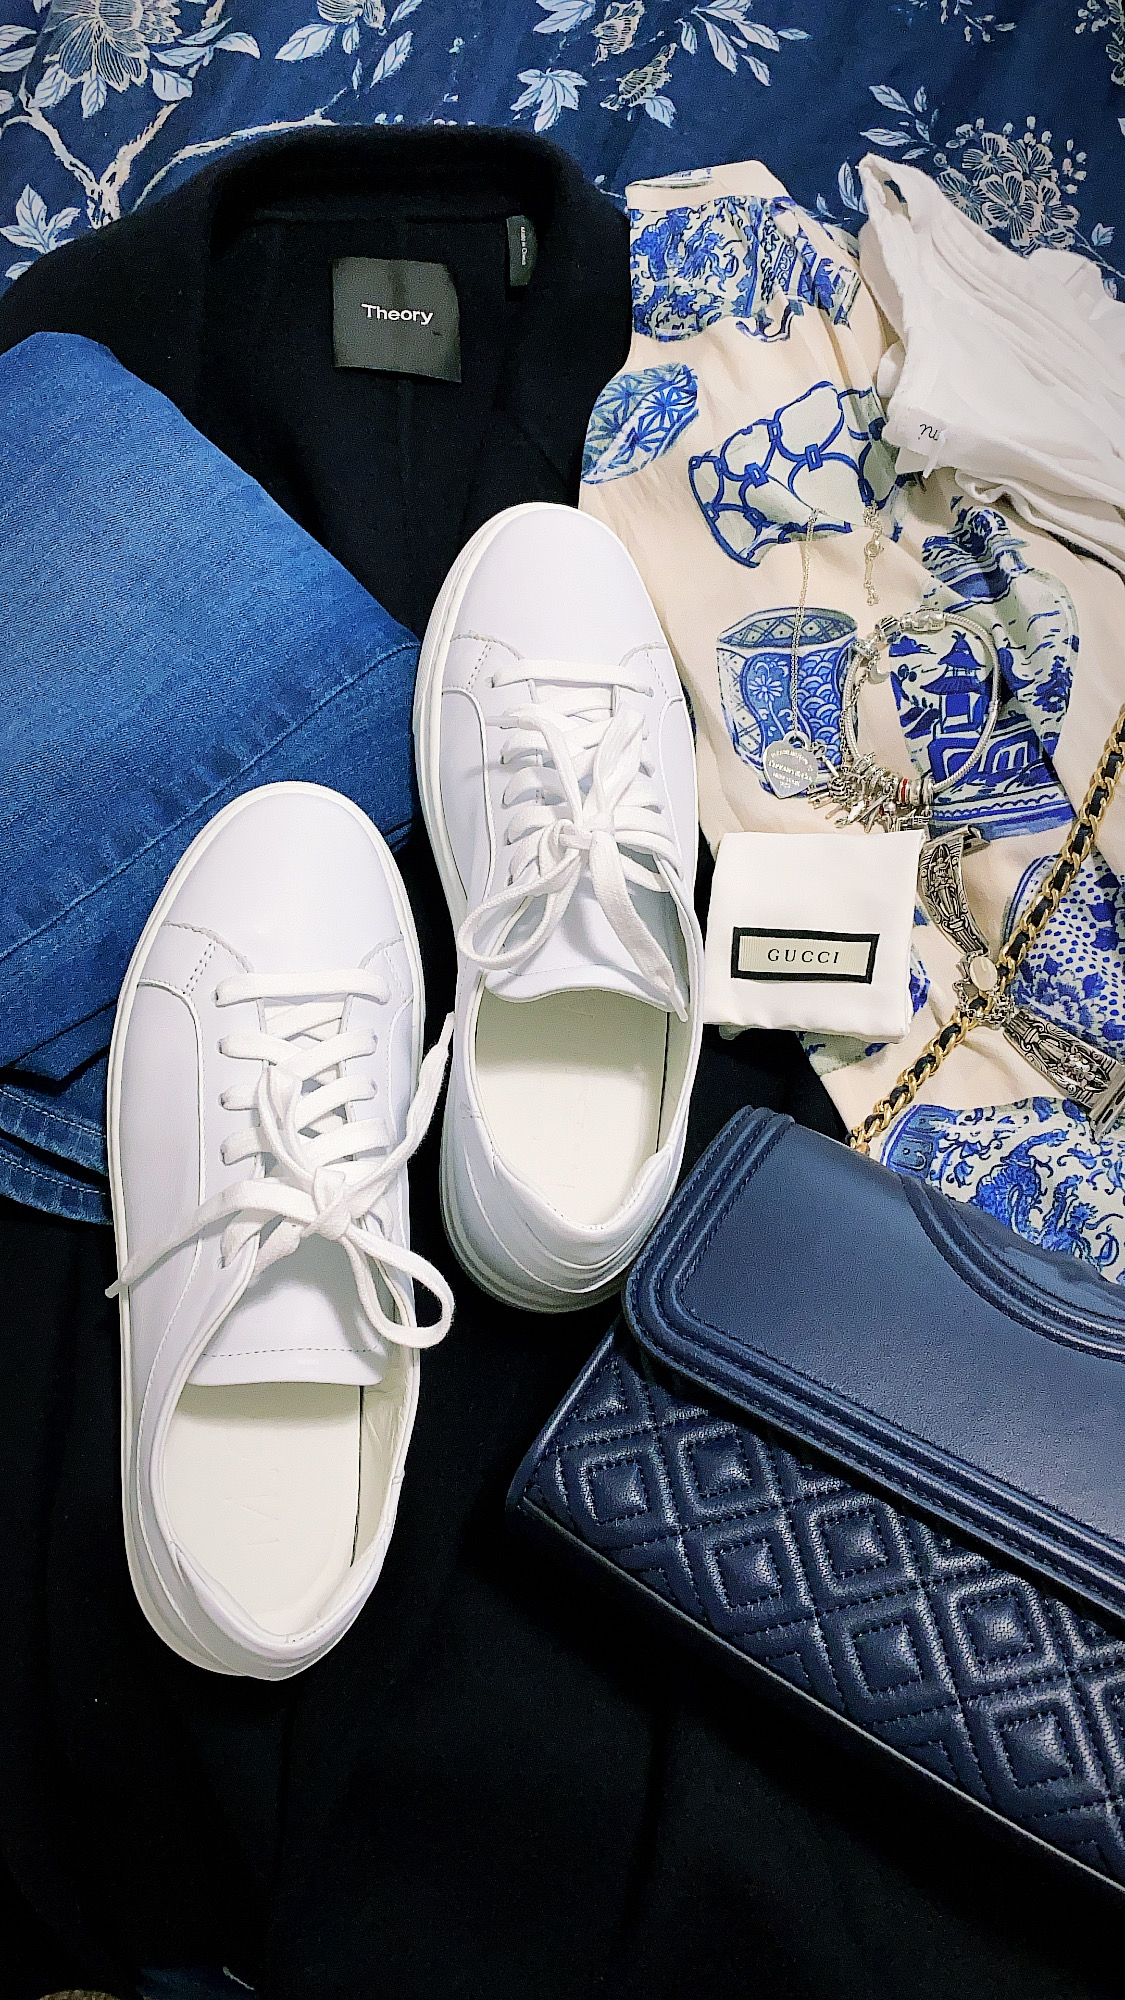 M.Gemi Palestra Due White Leather Sneakers Worn by Annie Fairfax Spring Travel Shoe Style